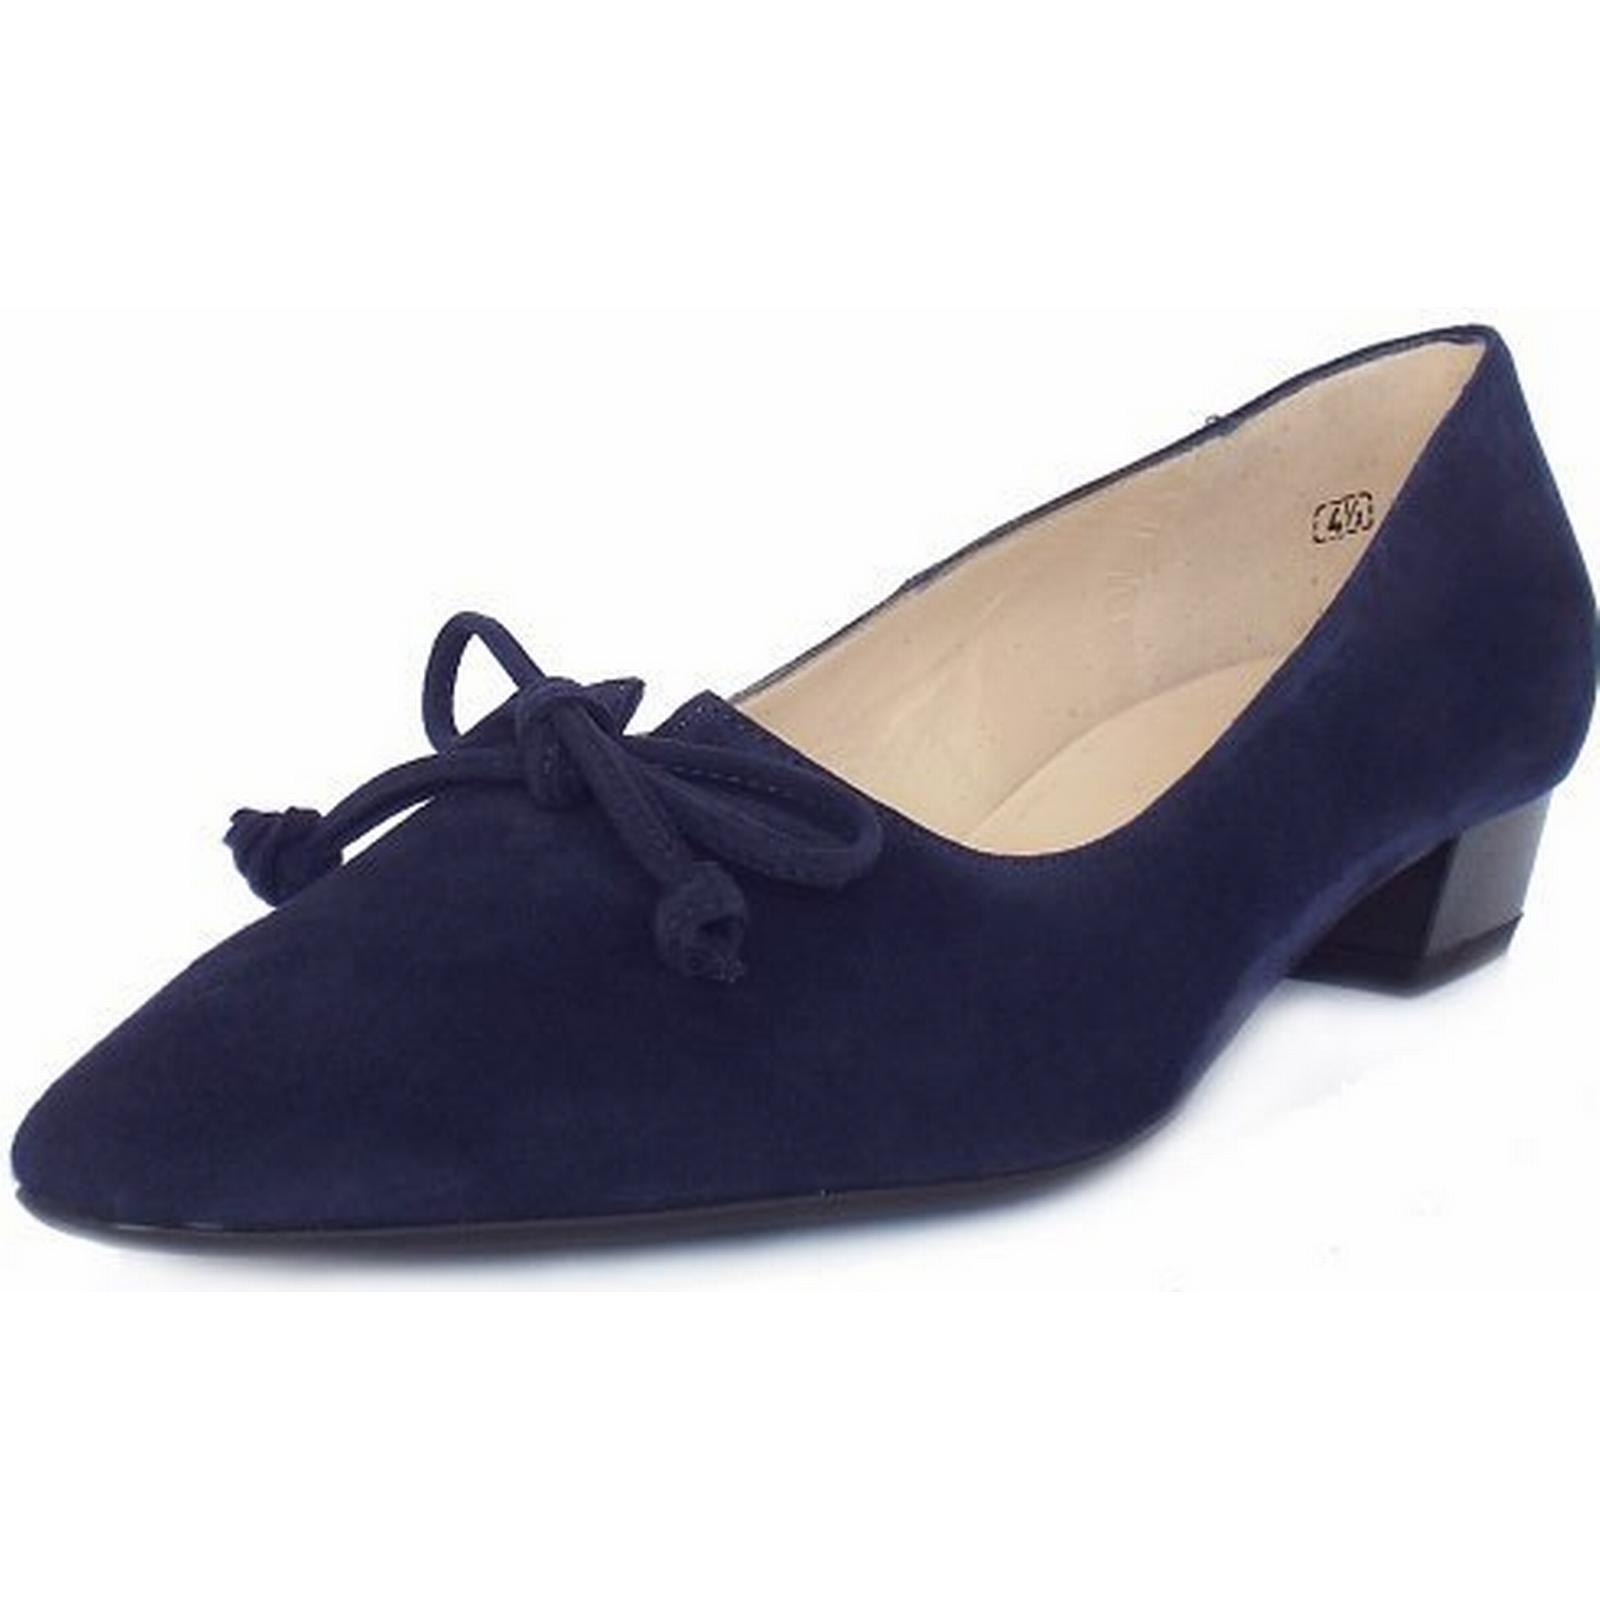 peter mesdames kaiser lizzy peter kaiser mesdames peter chaussures taille: 6,5, couleur: marine s 9a34b1